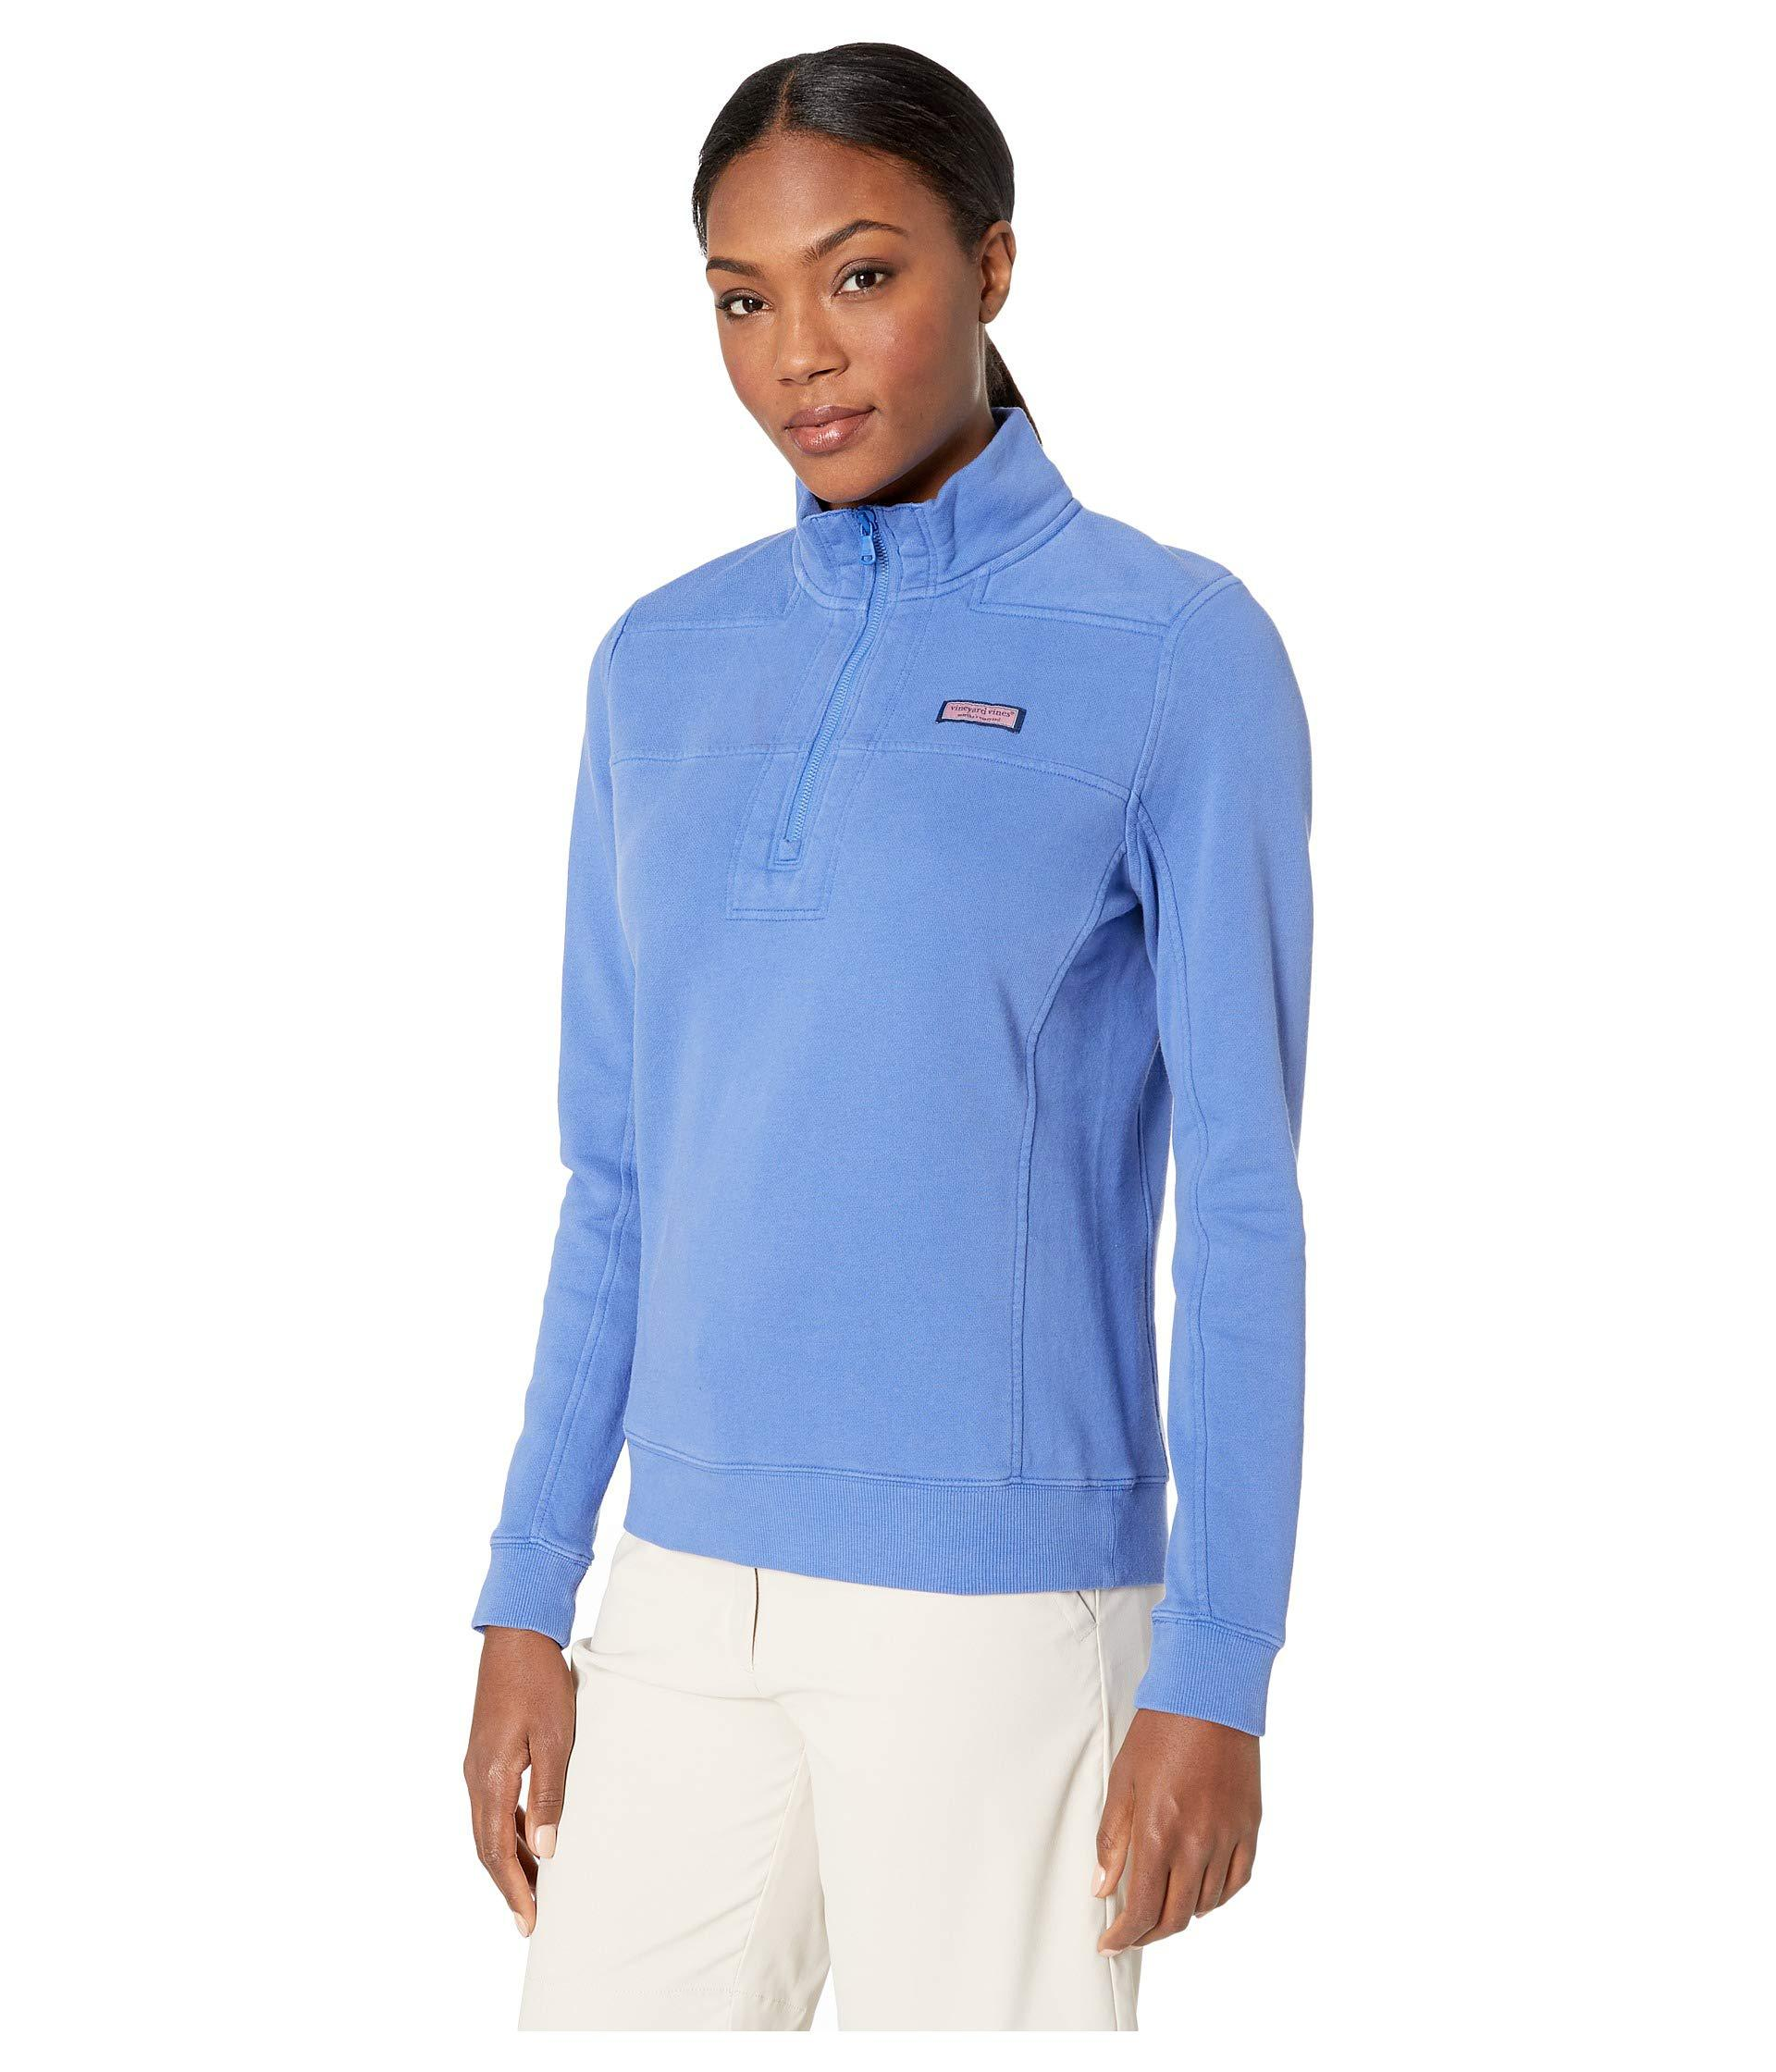 63452e9f894a1 Lyst - Vineyard Vines Garment Dyed Shep Pullover (marlin) Women s Clothing  in Blue